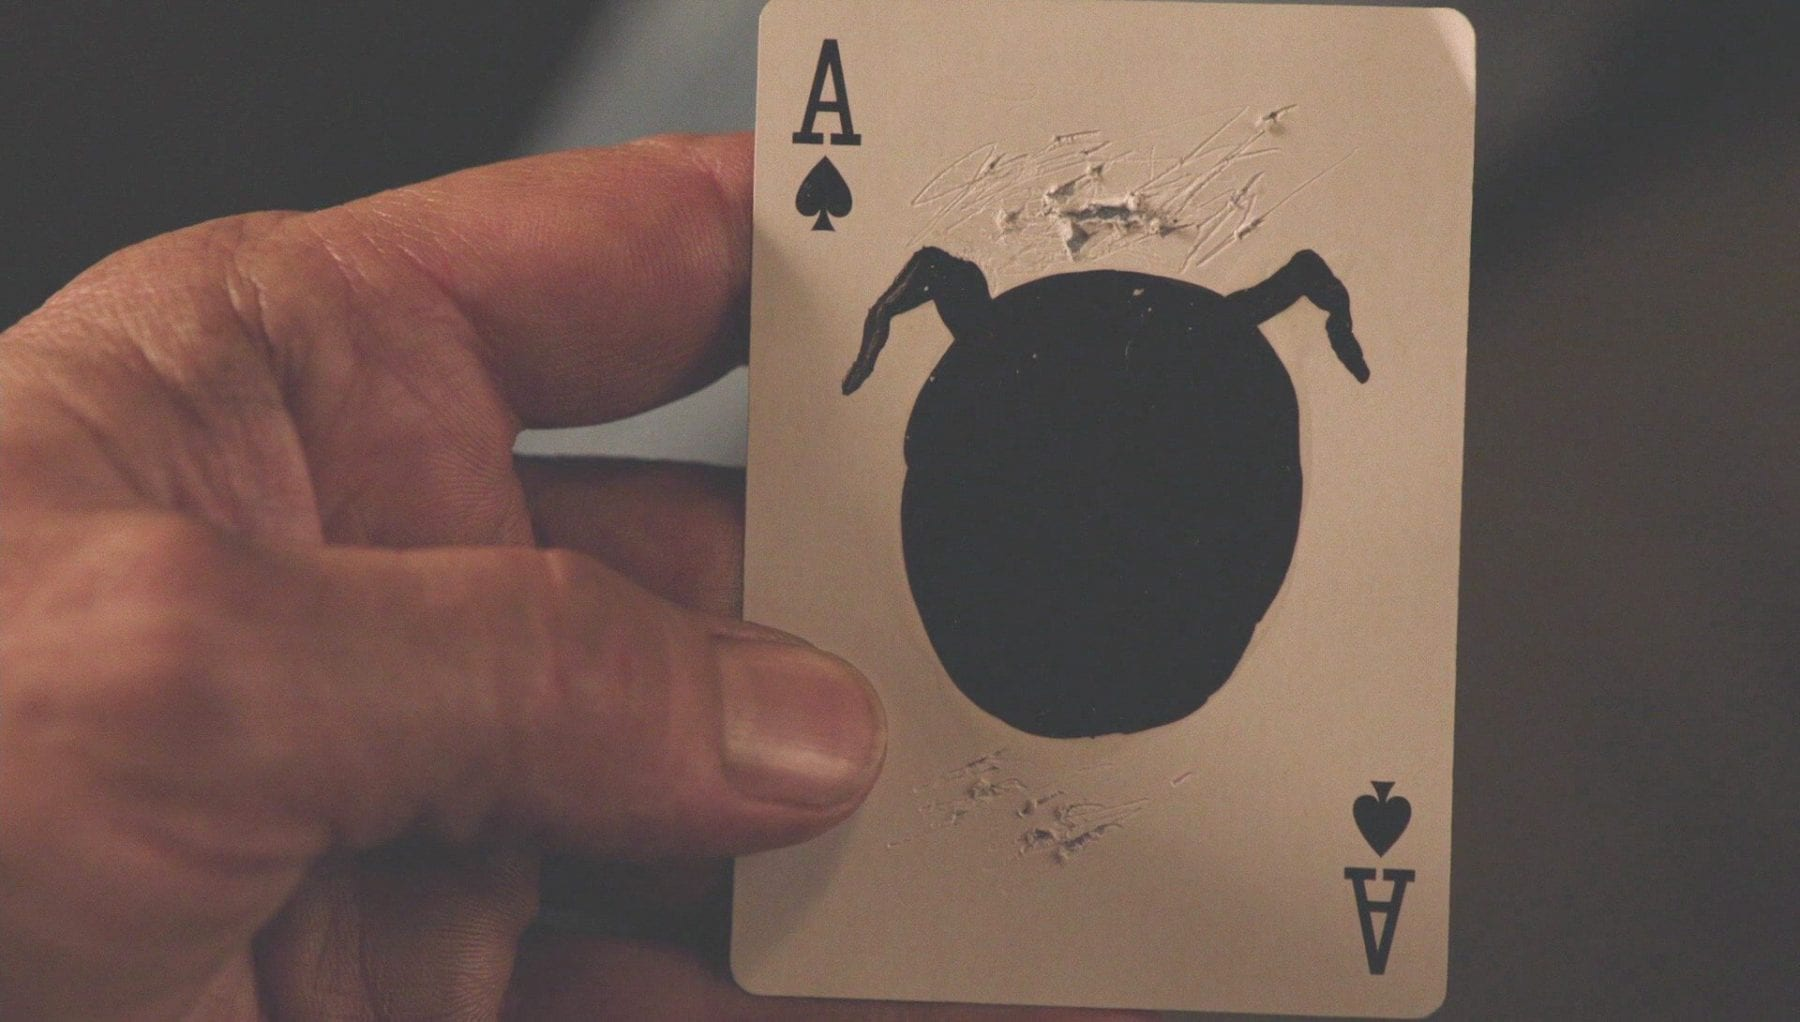 Ace of spades card with black circle with horns painted over the spade